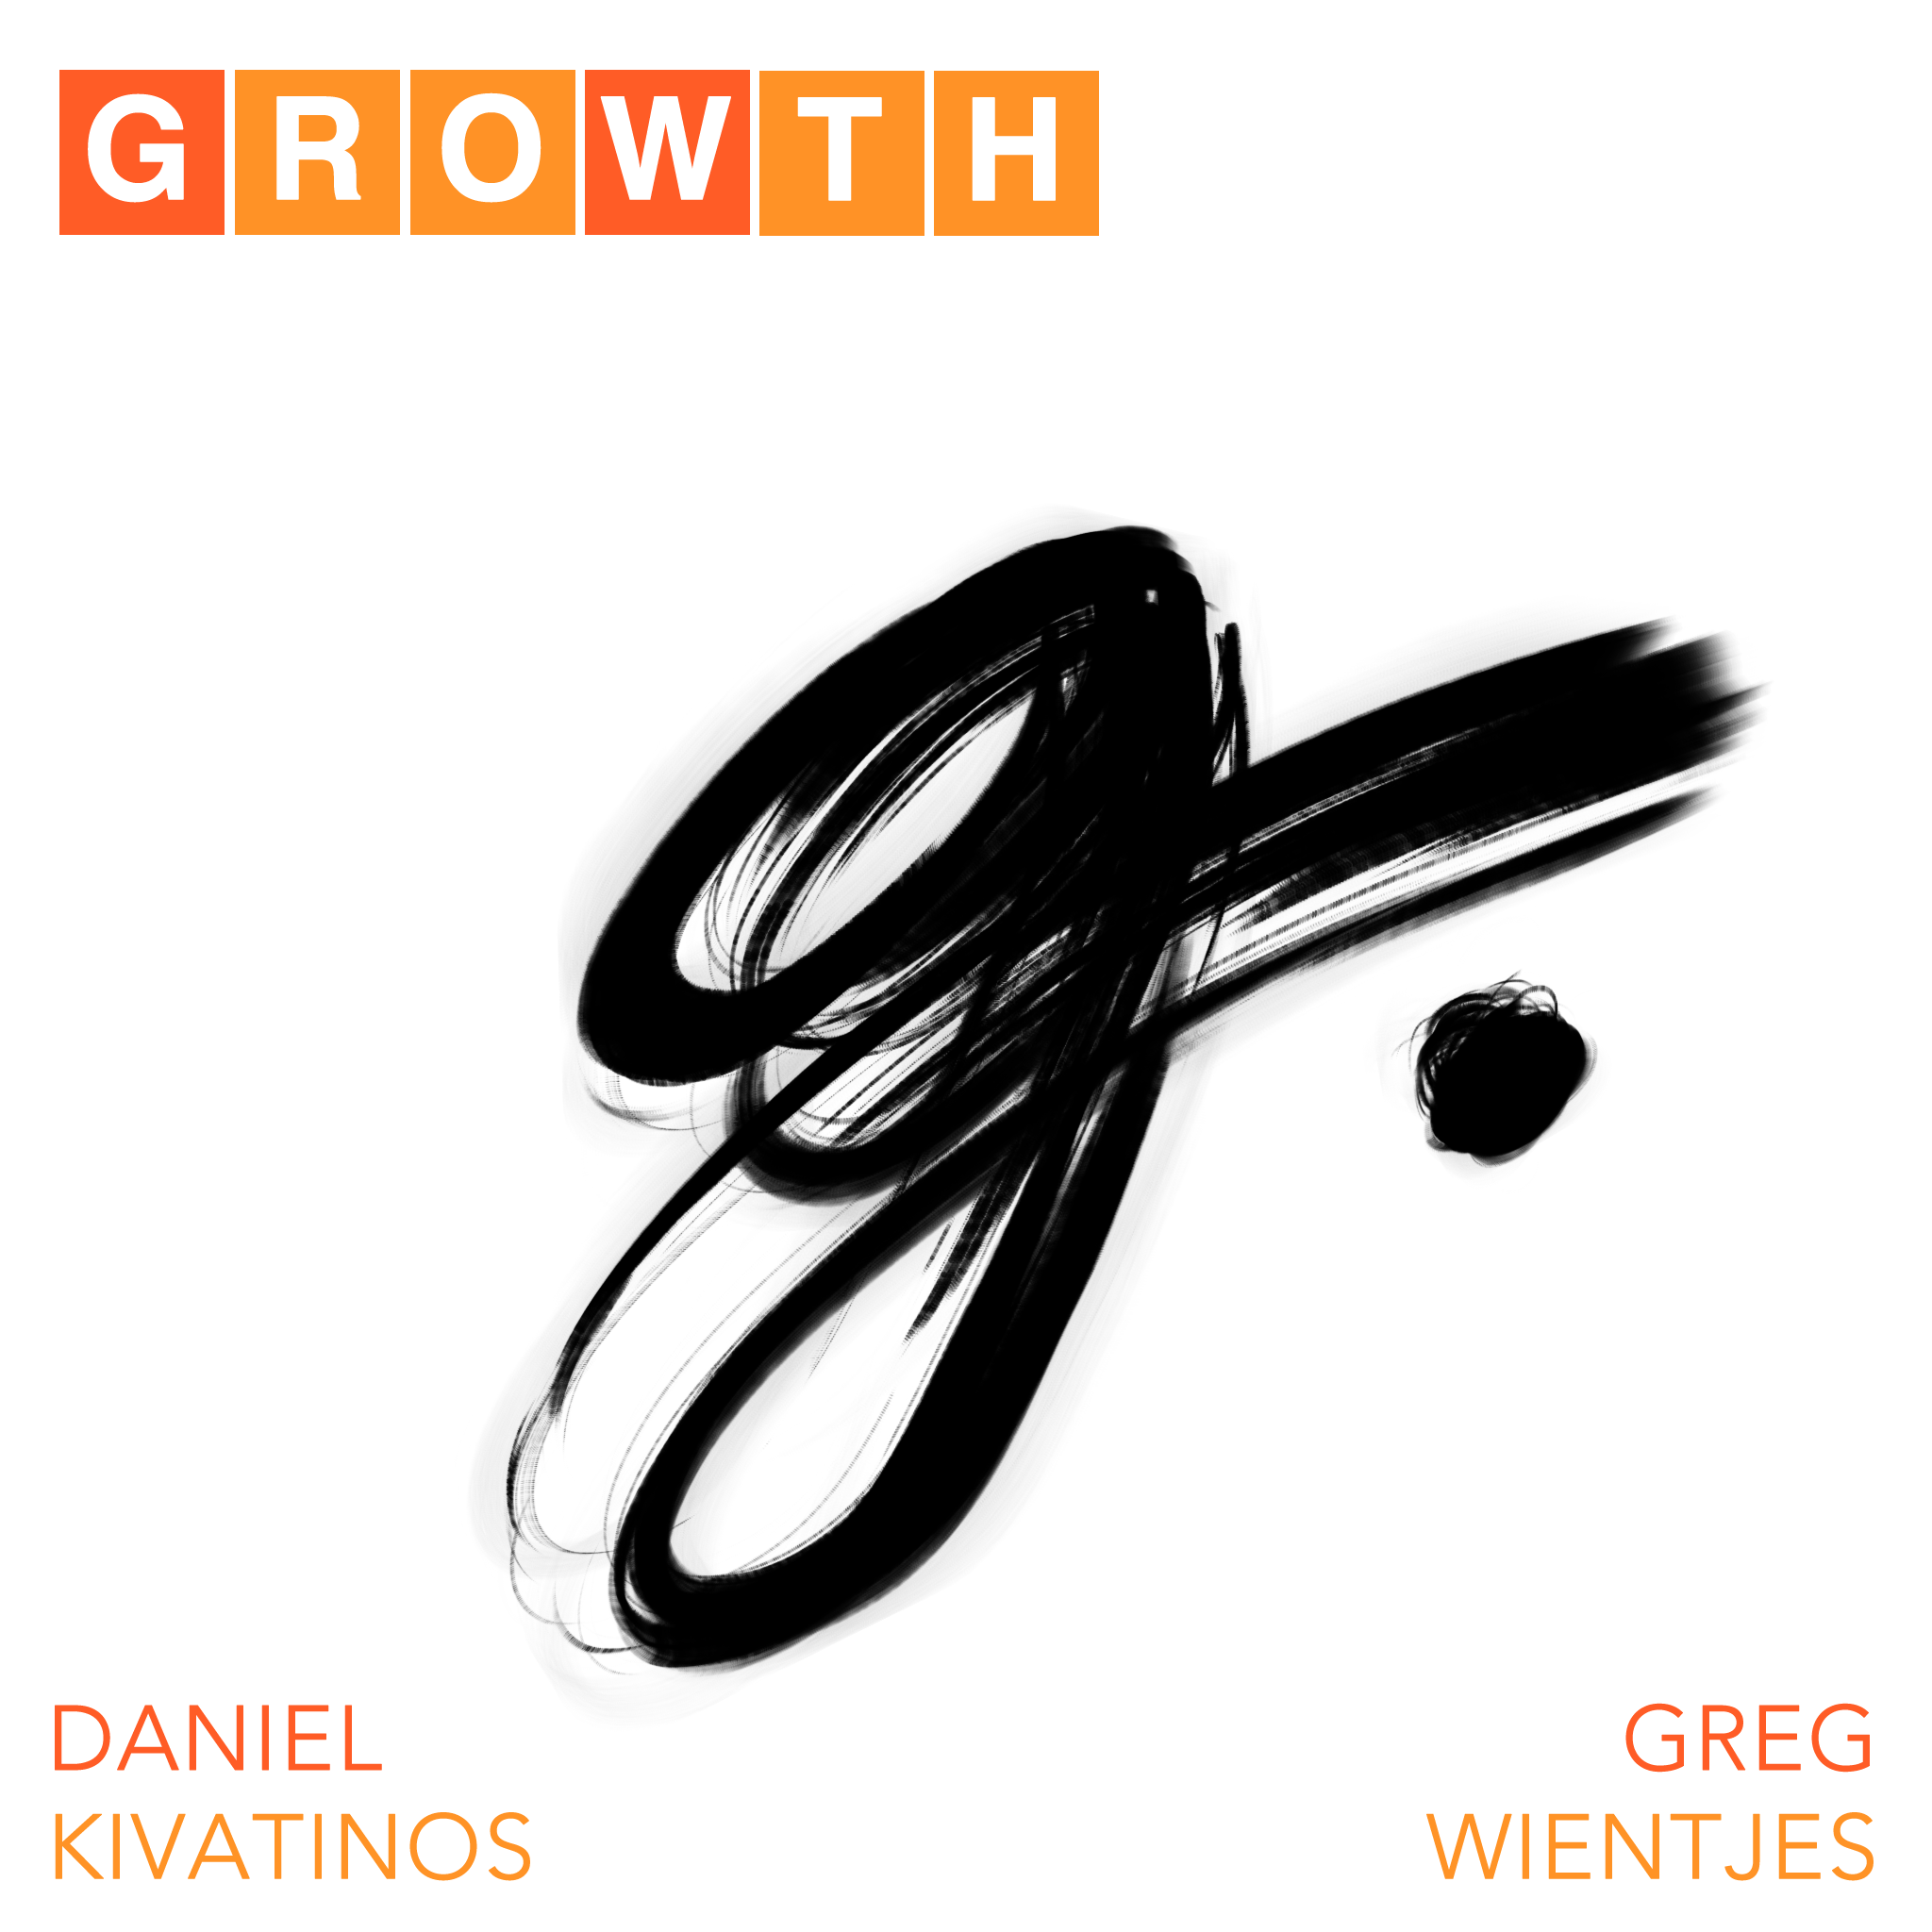 ongrowth - a podcast about all things that inspire. show art